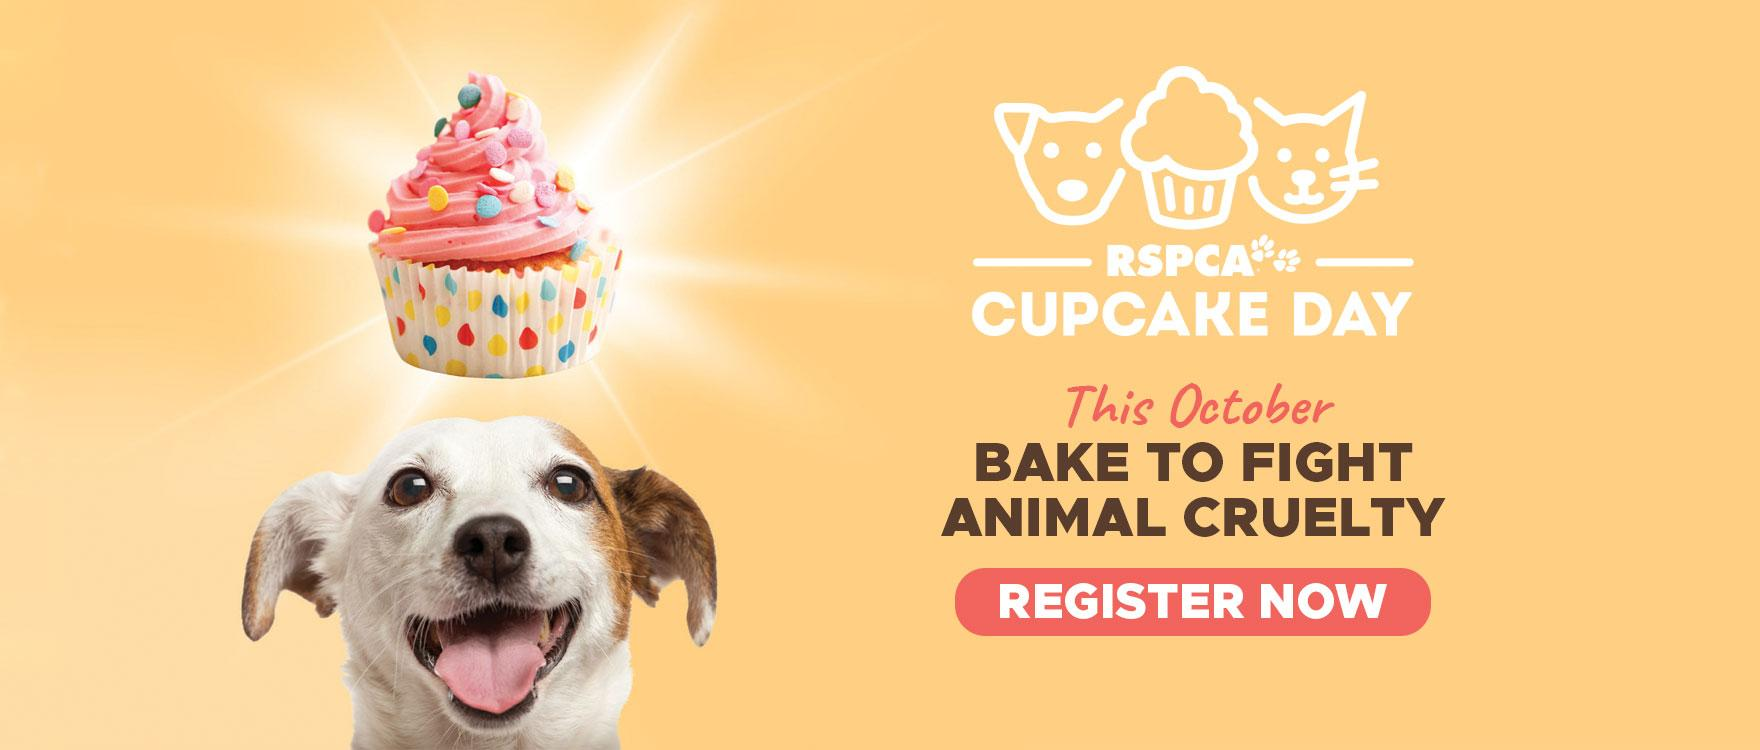 Register to bake a difference this Cupcake Day!